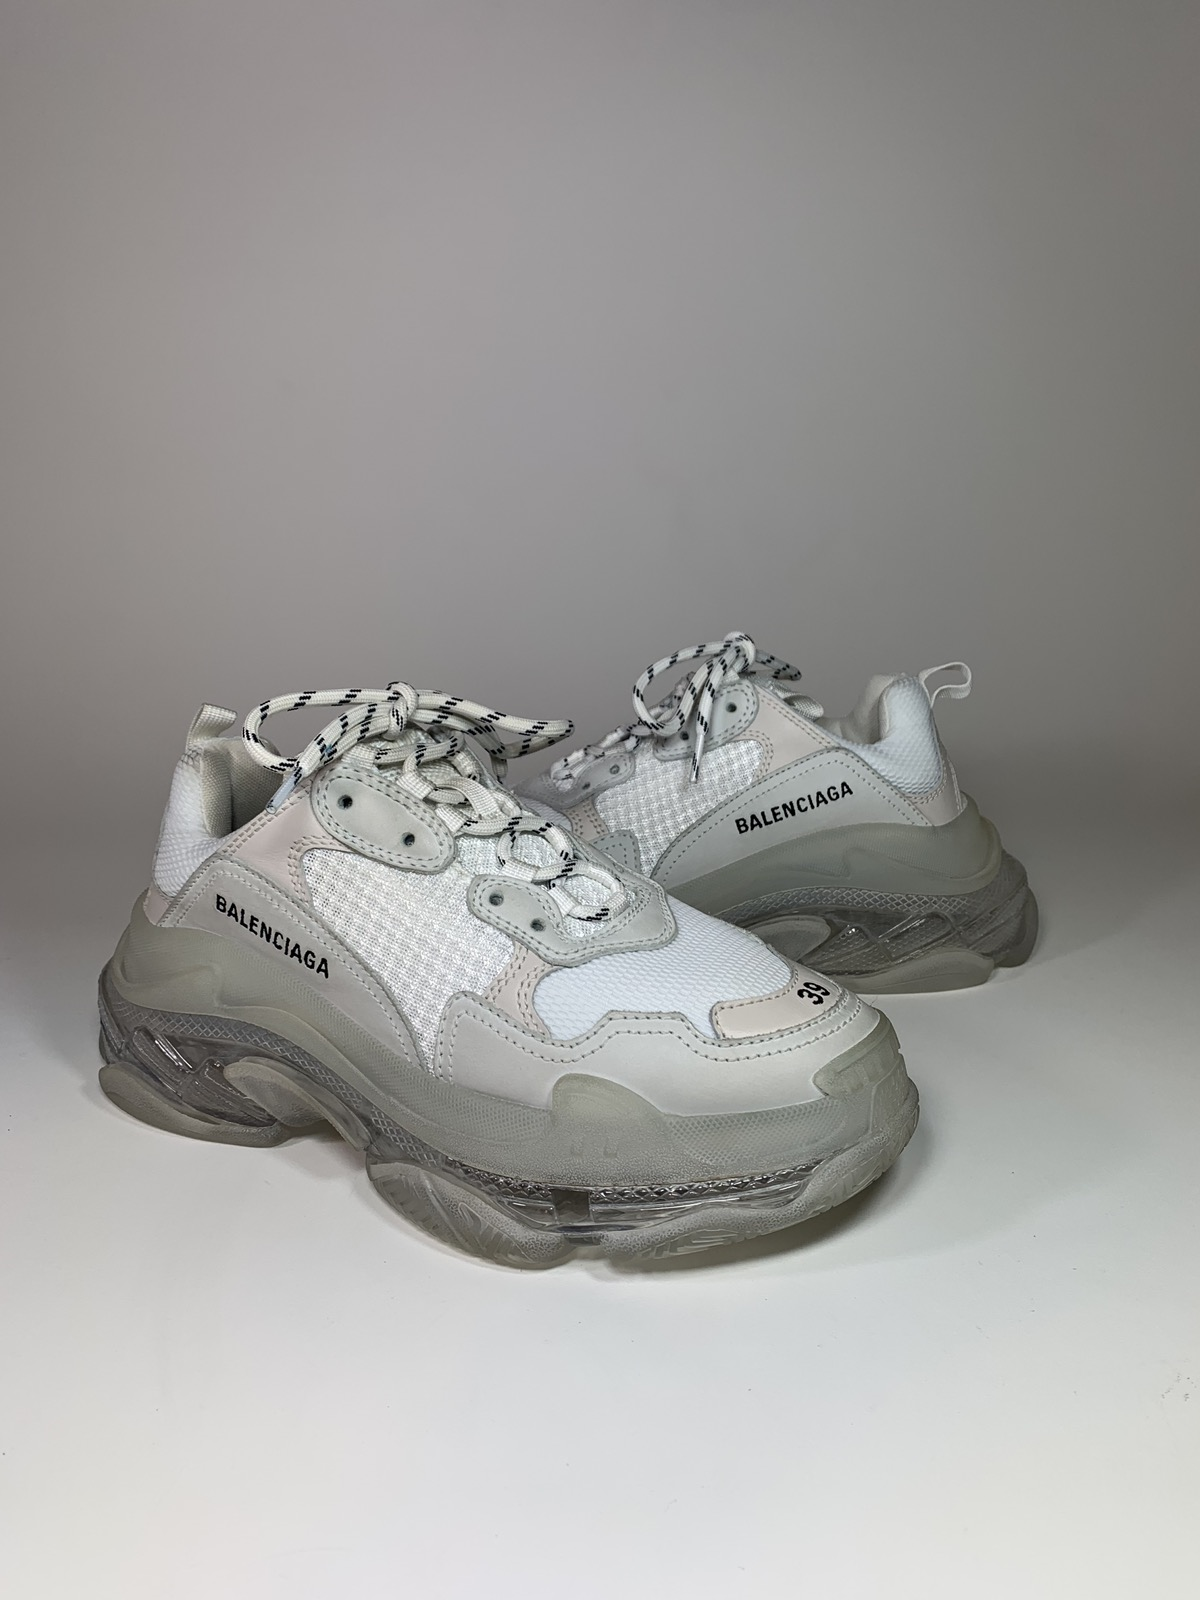 Balenciaga Triple S Clear Sole Grailed